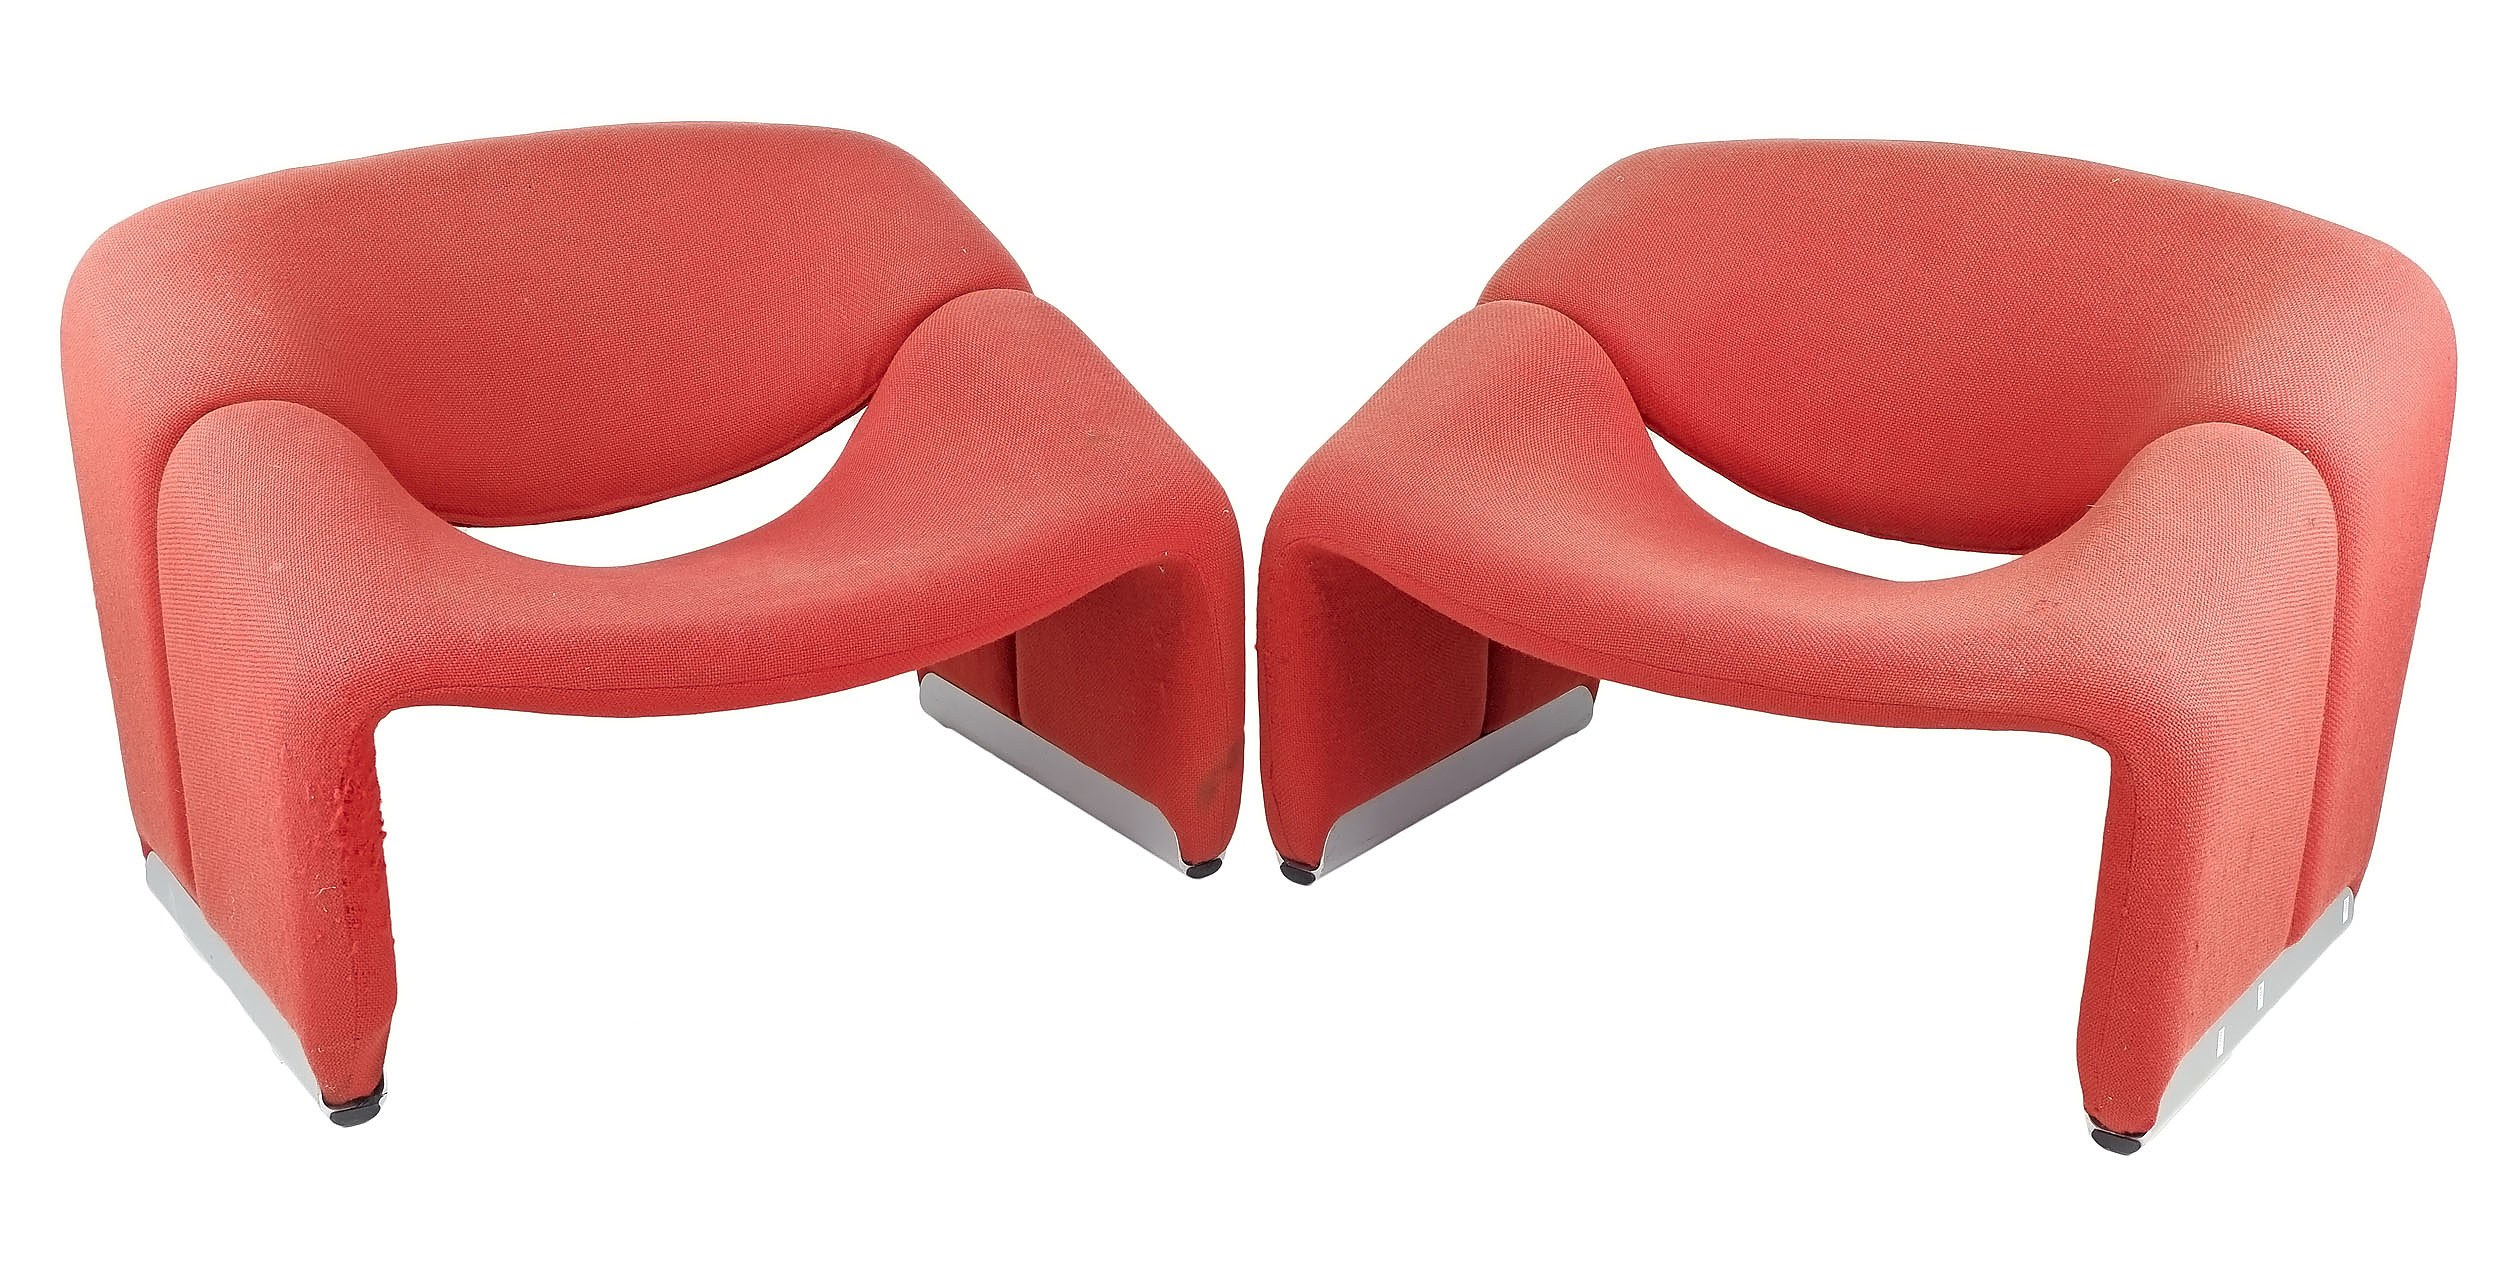 'Pair of Pierre Paulin F598 Lounge Chairs for Artifort, Circa 1980s'